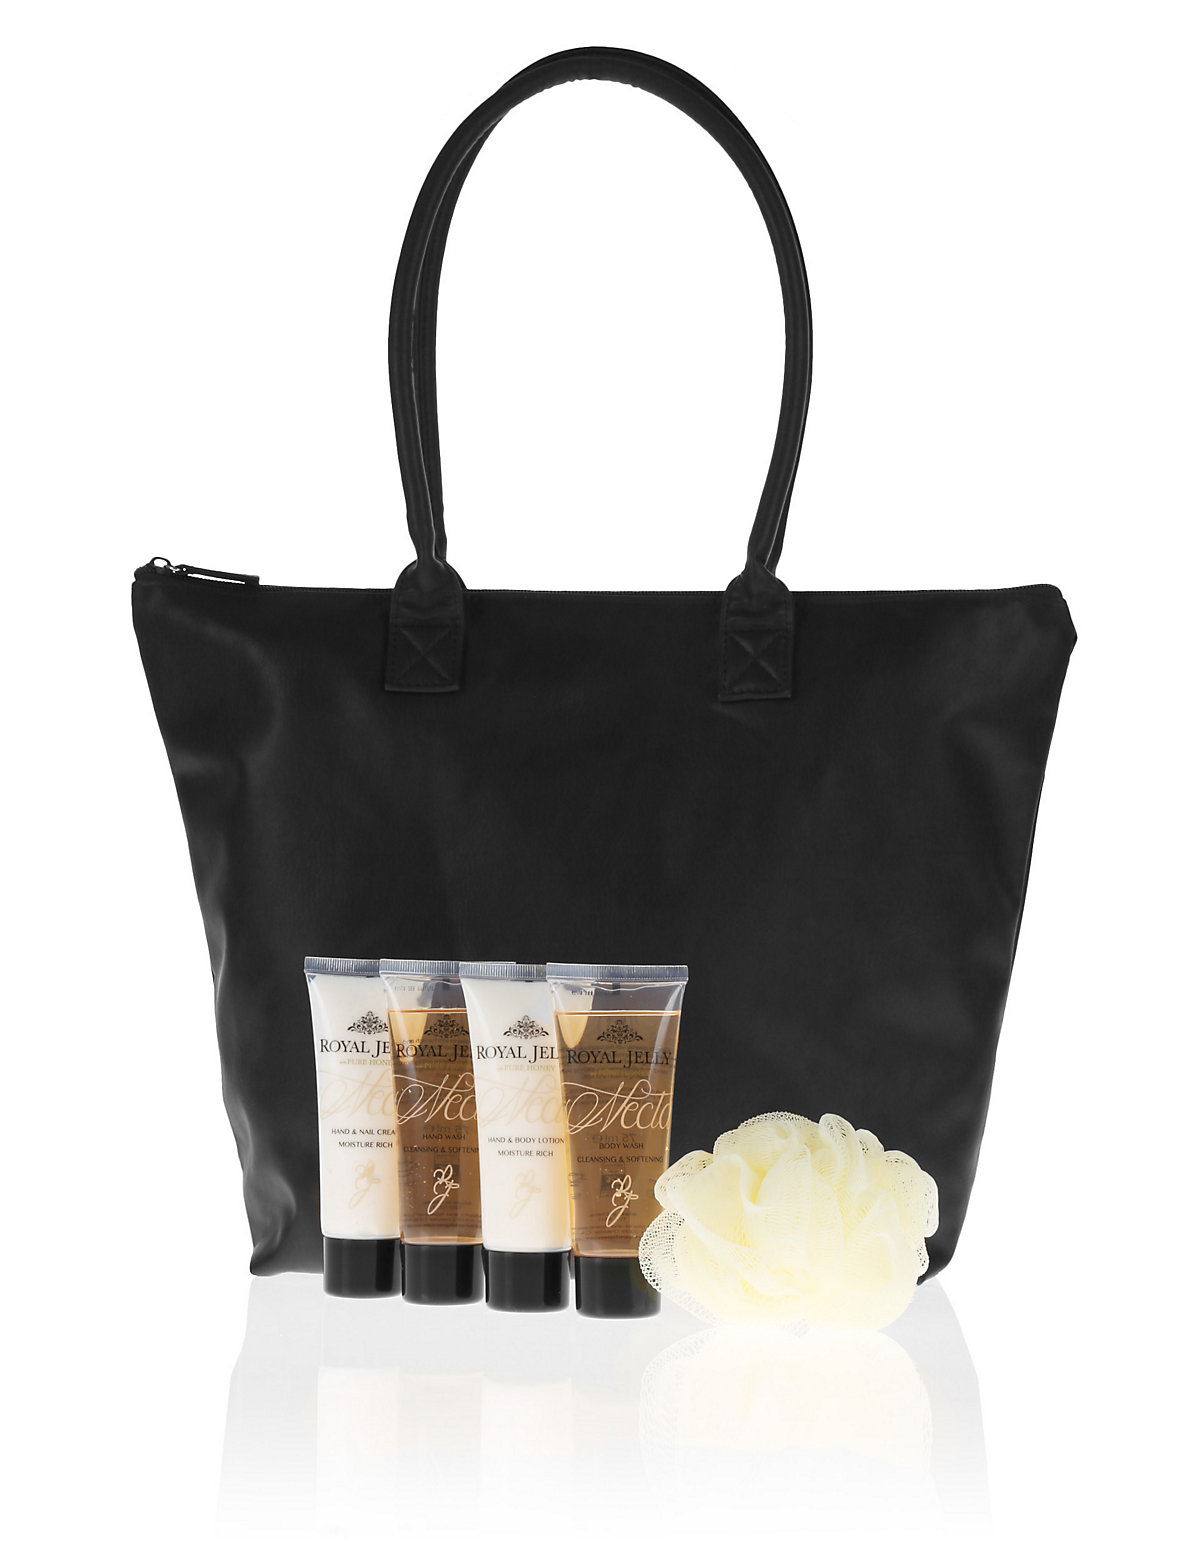 Royal Jelly Bumper Bag of Treats